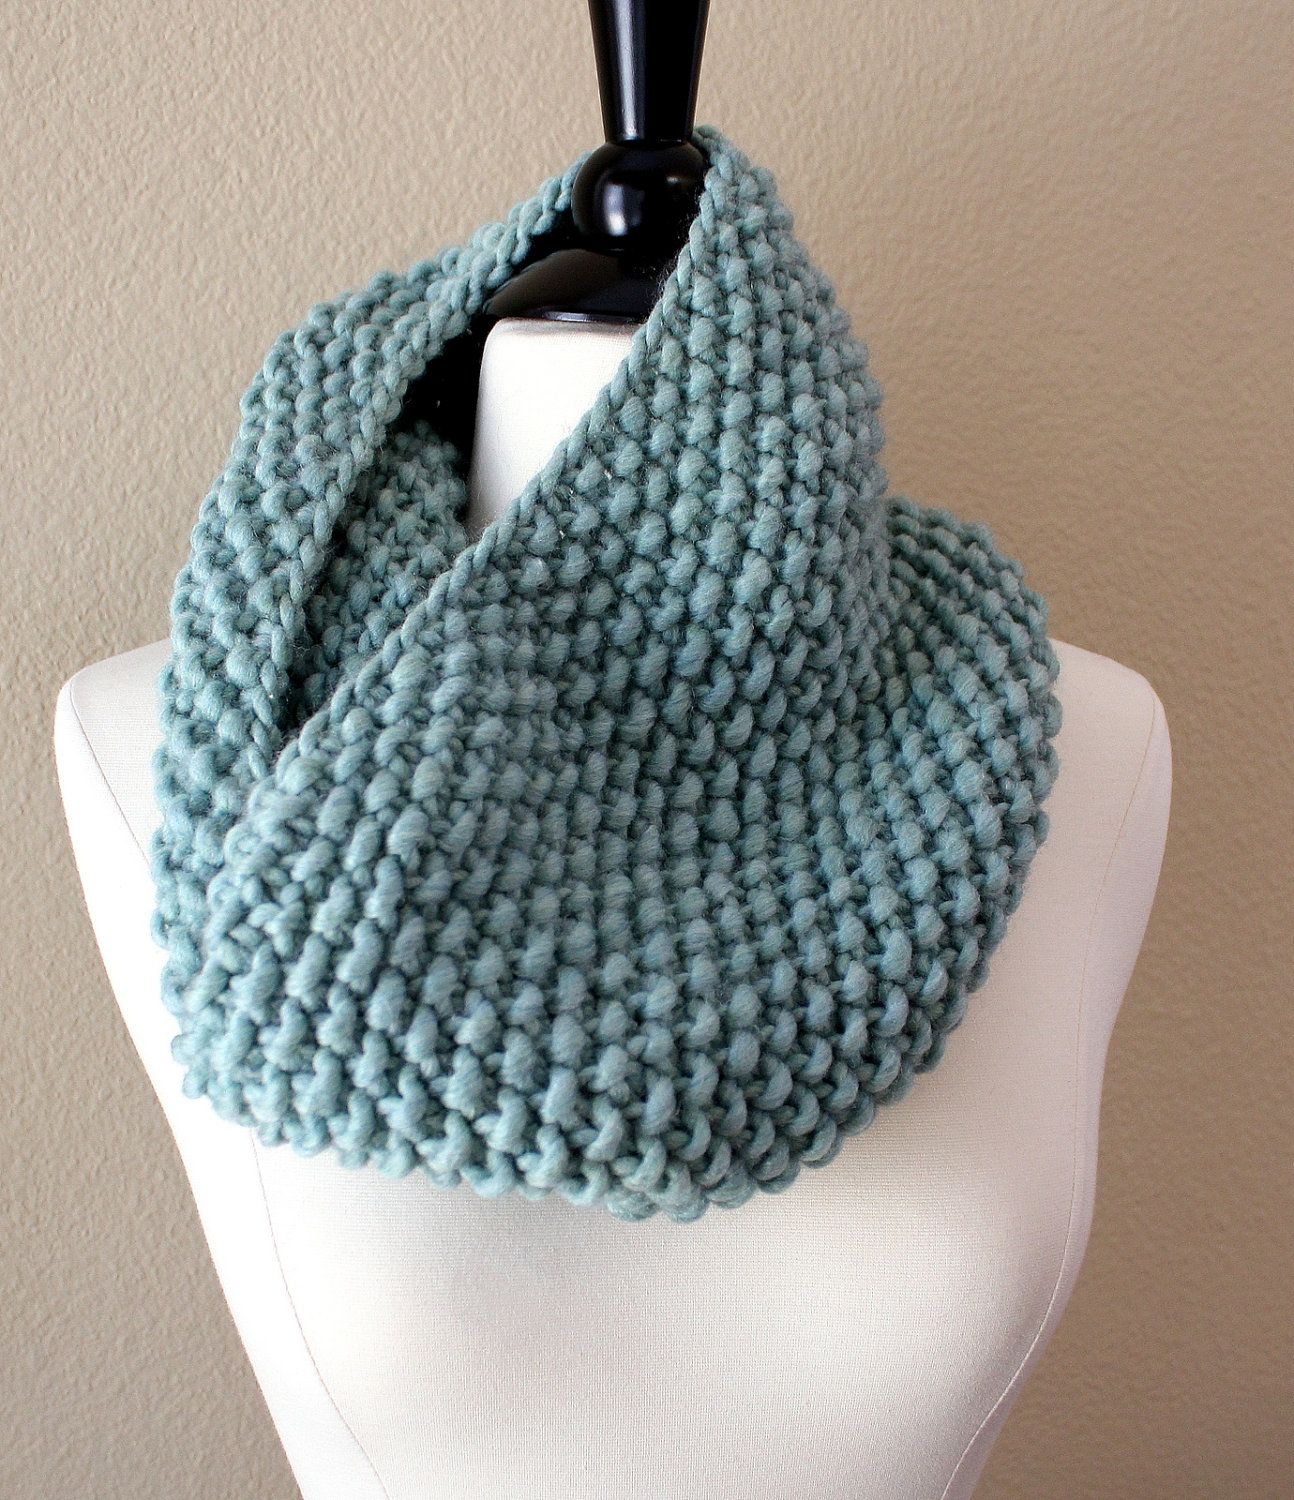 Seaglass Cowl Scarf in Seed Stitch - Ready To Ship. $24.00, via Etsy ...